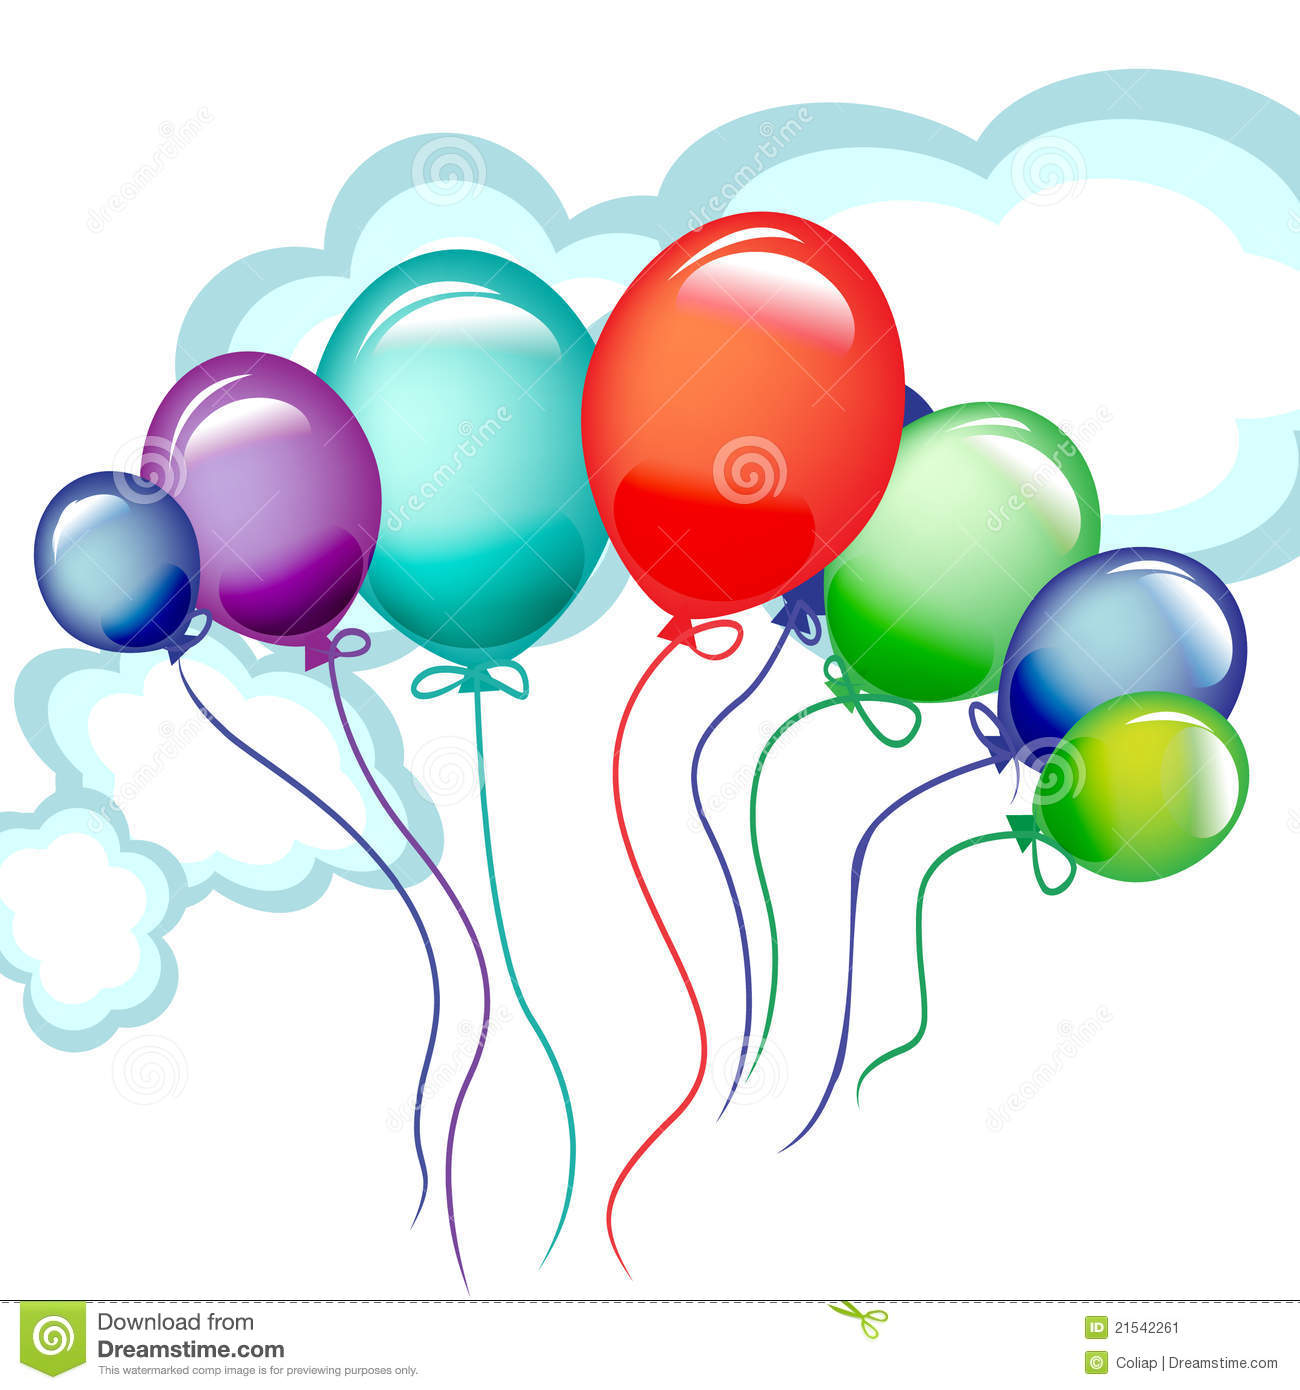 Lots Of Flying Celebration Balloons Stock Image - Image: 21542261